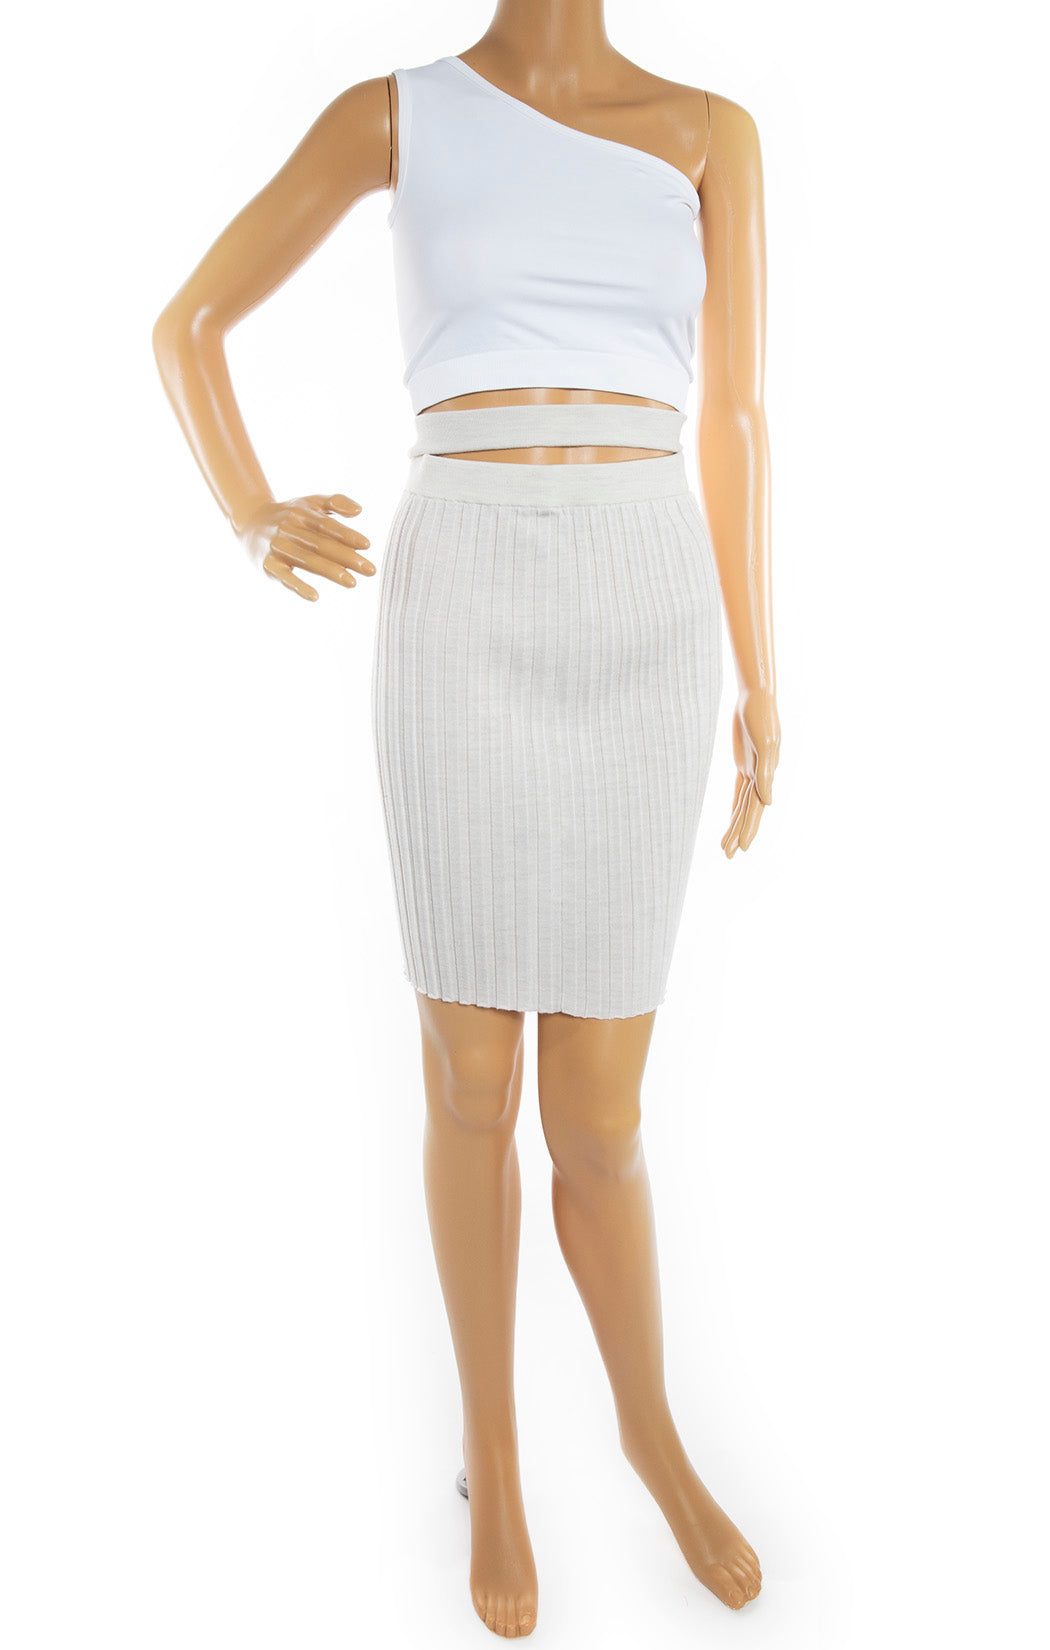 Front view of HELMUT LANG Skirt Size: No tags, fits like XS/S